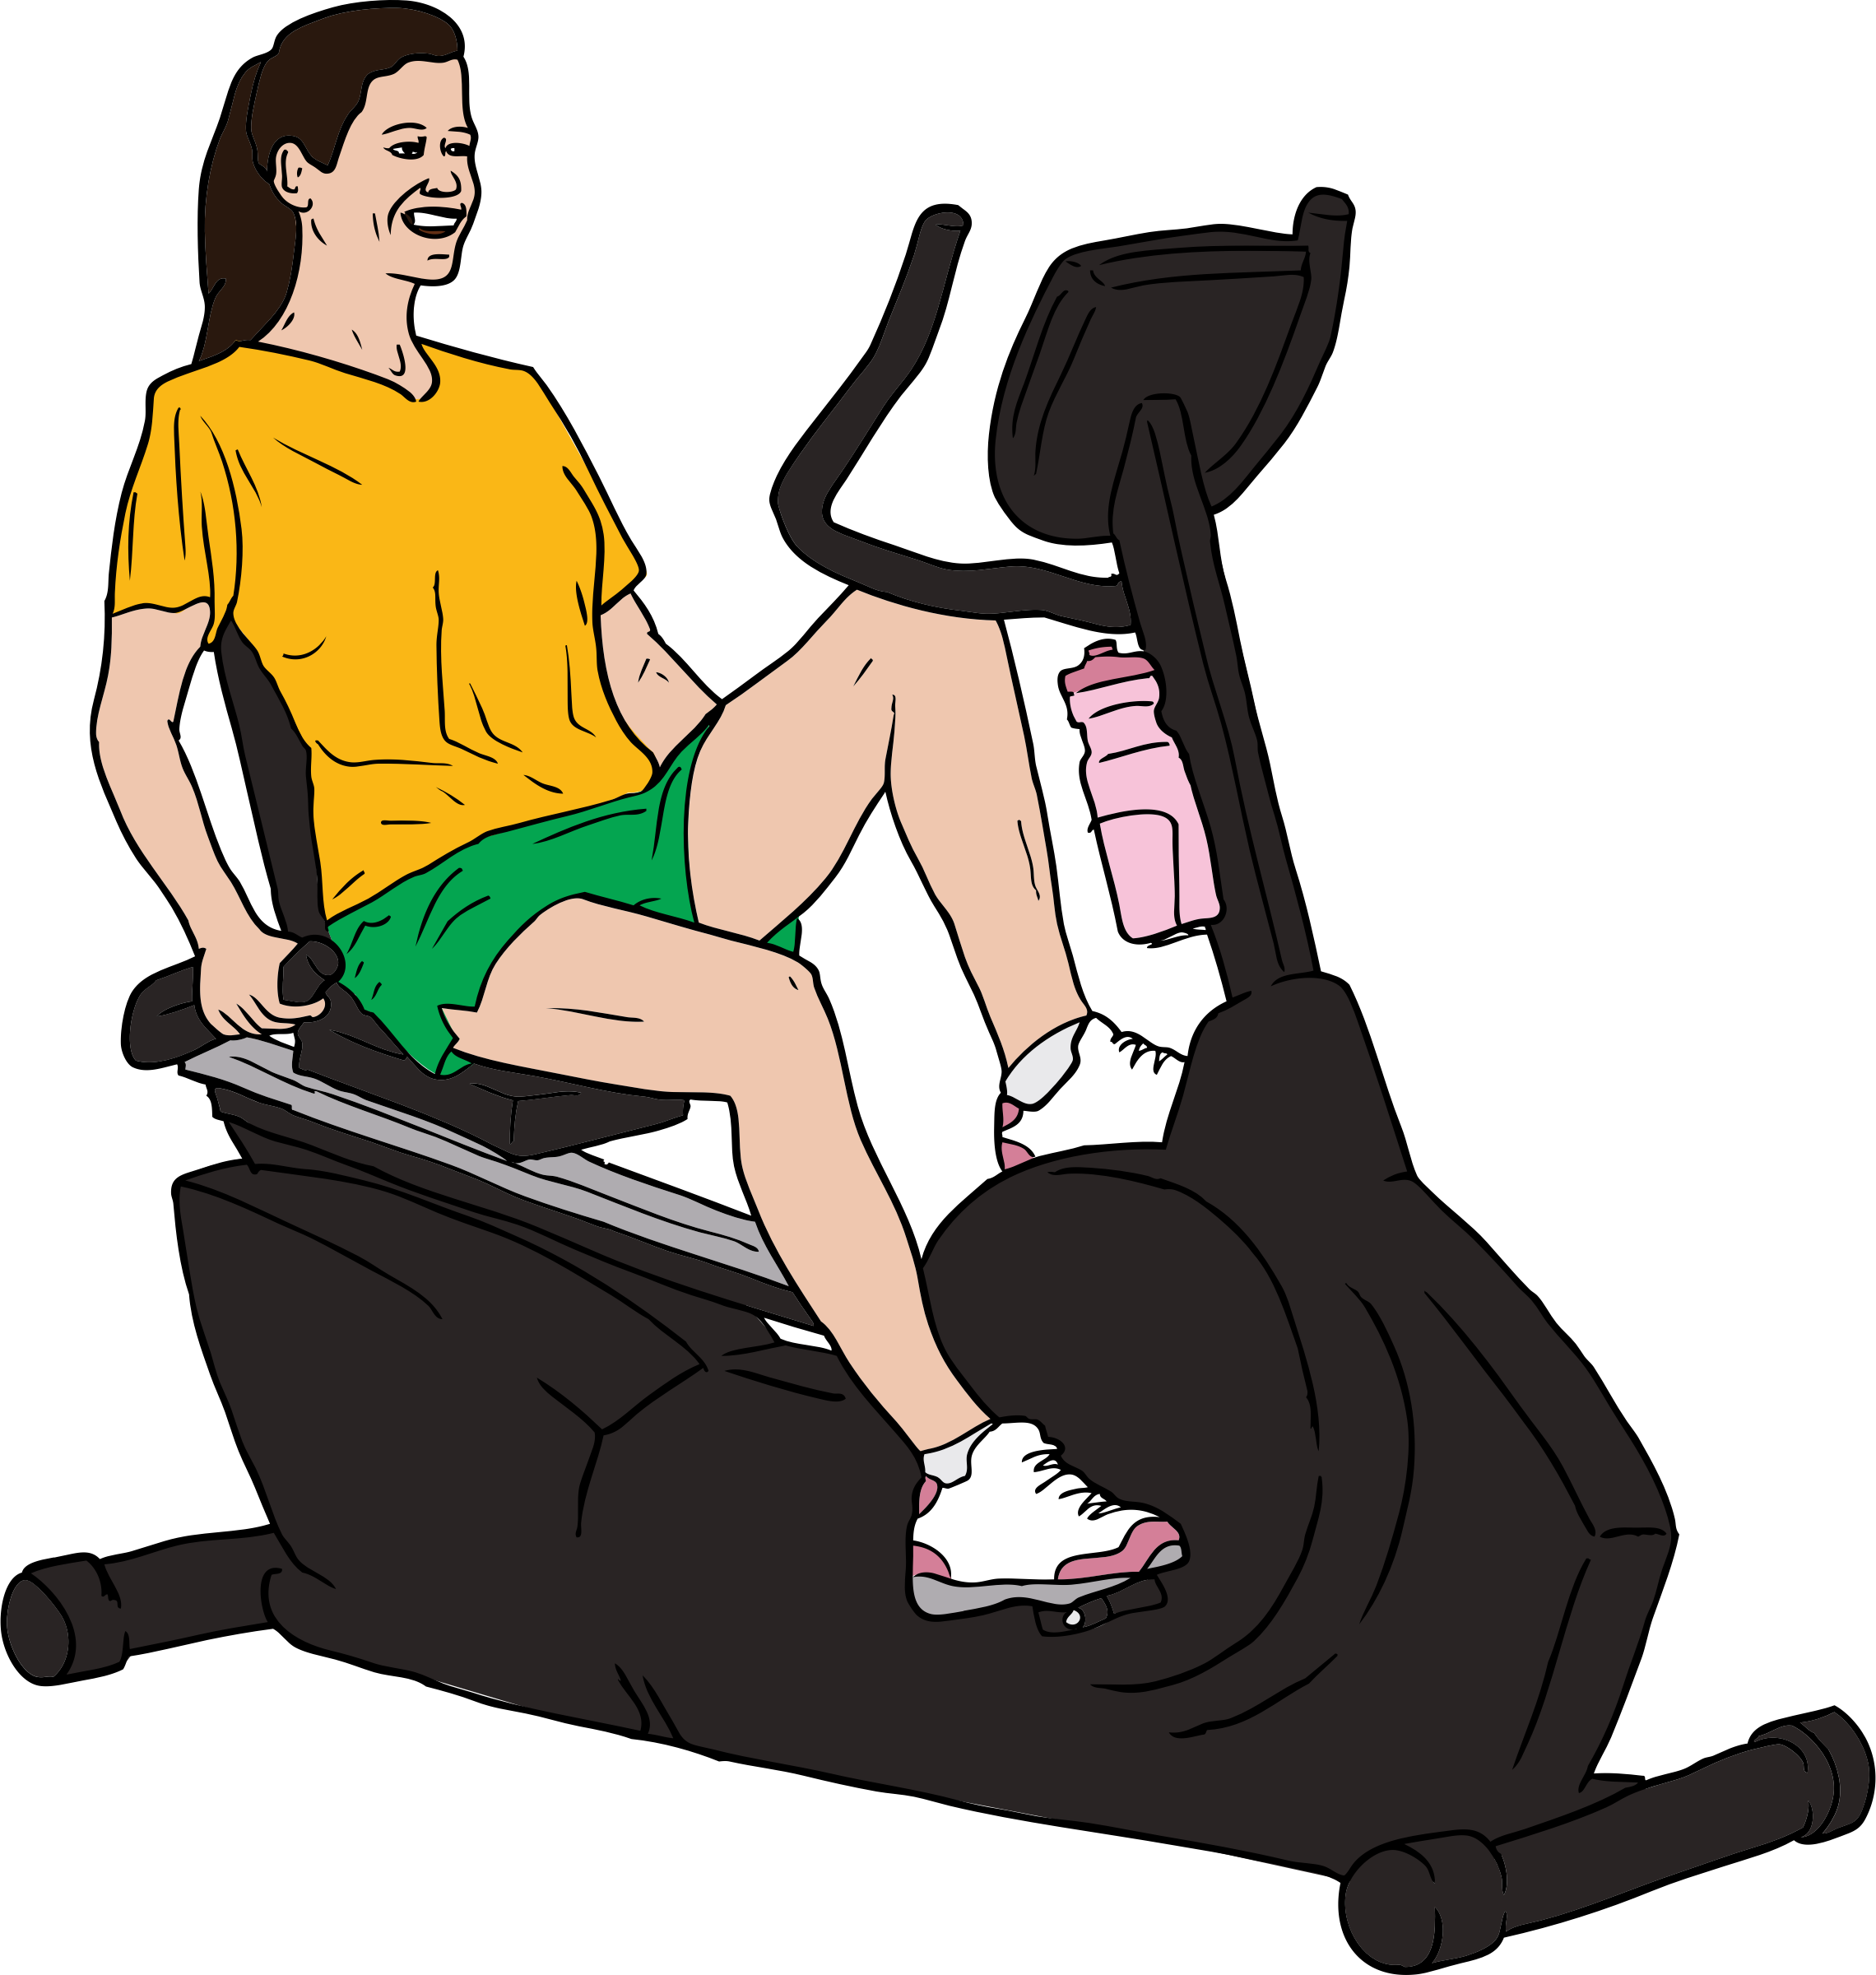 Woman on Exercise Bike by SteveLambert